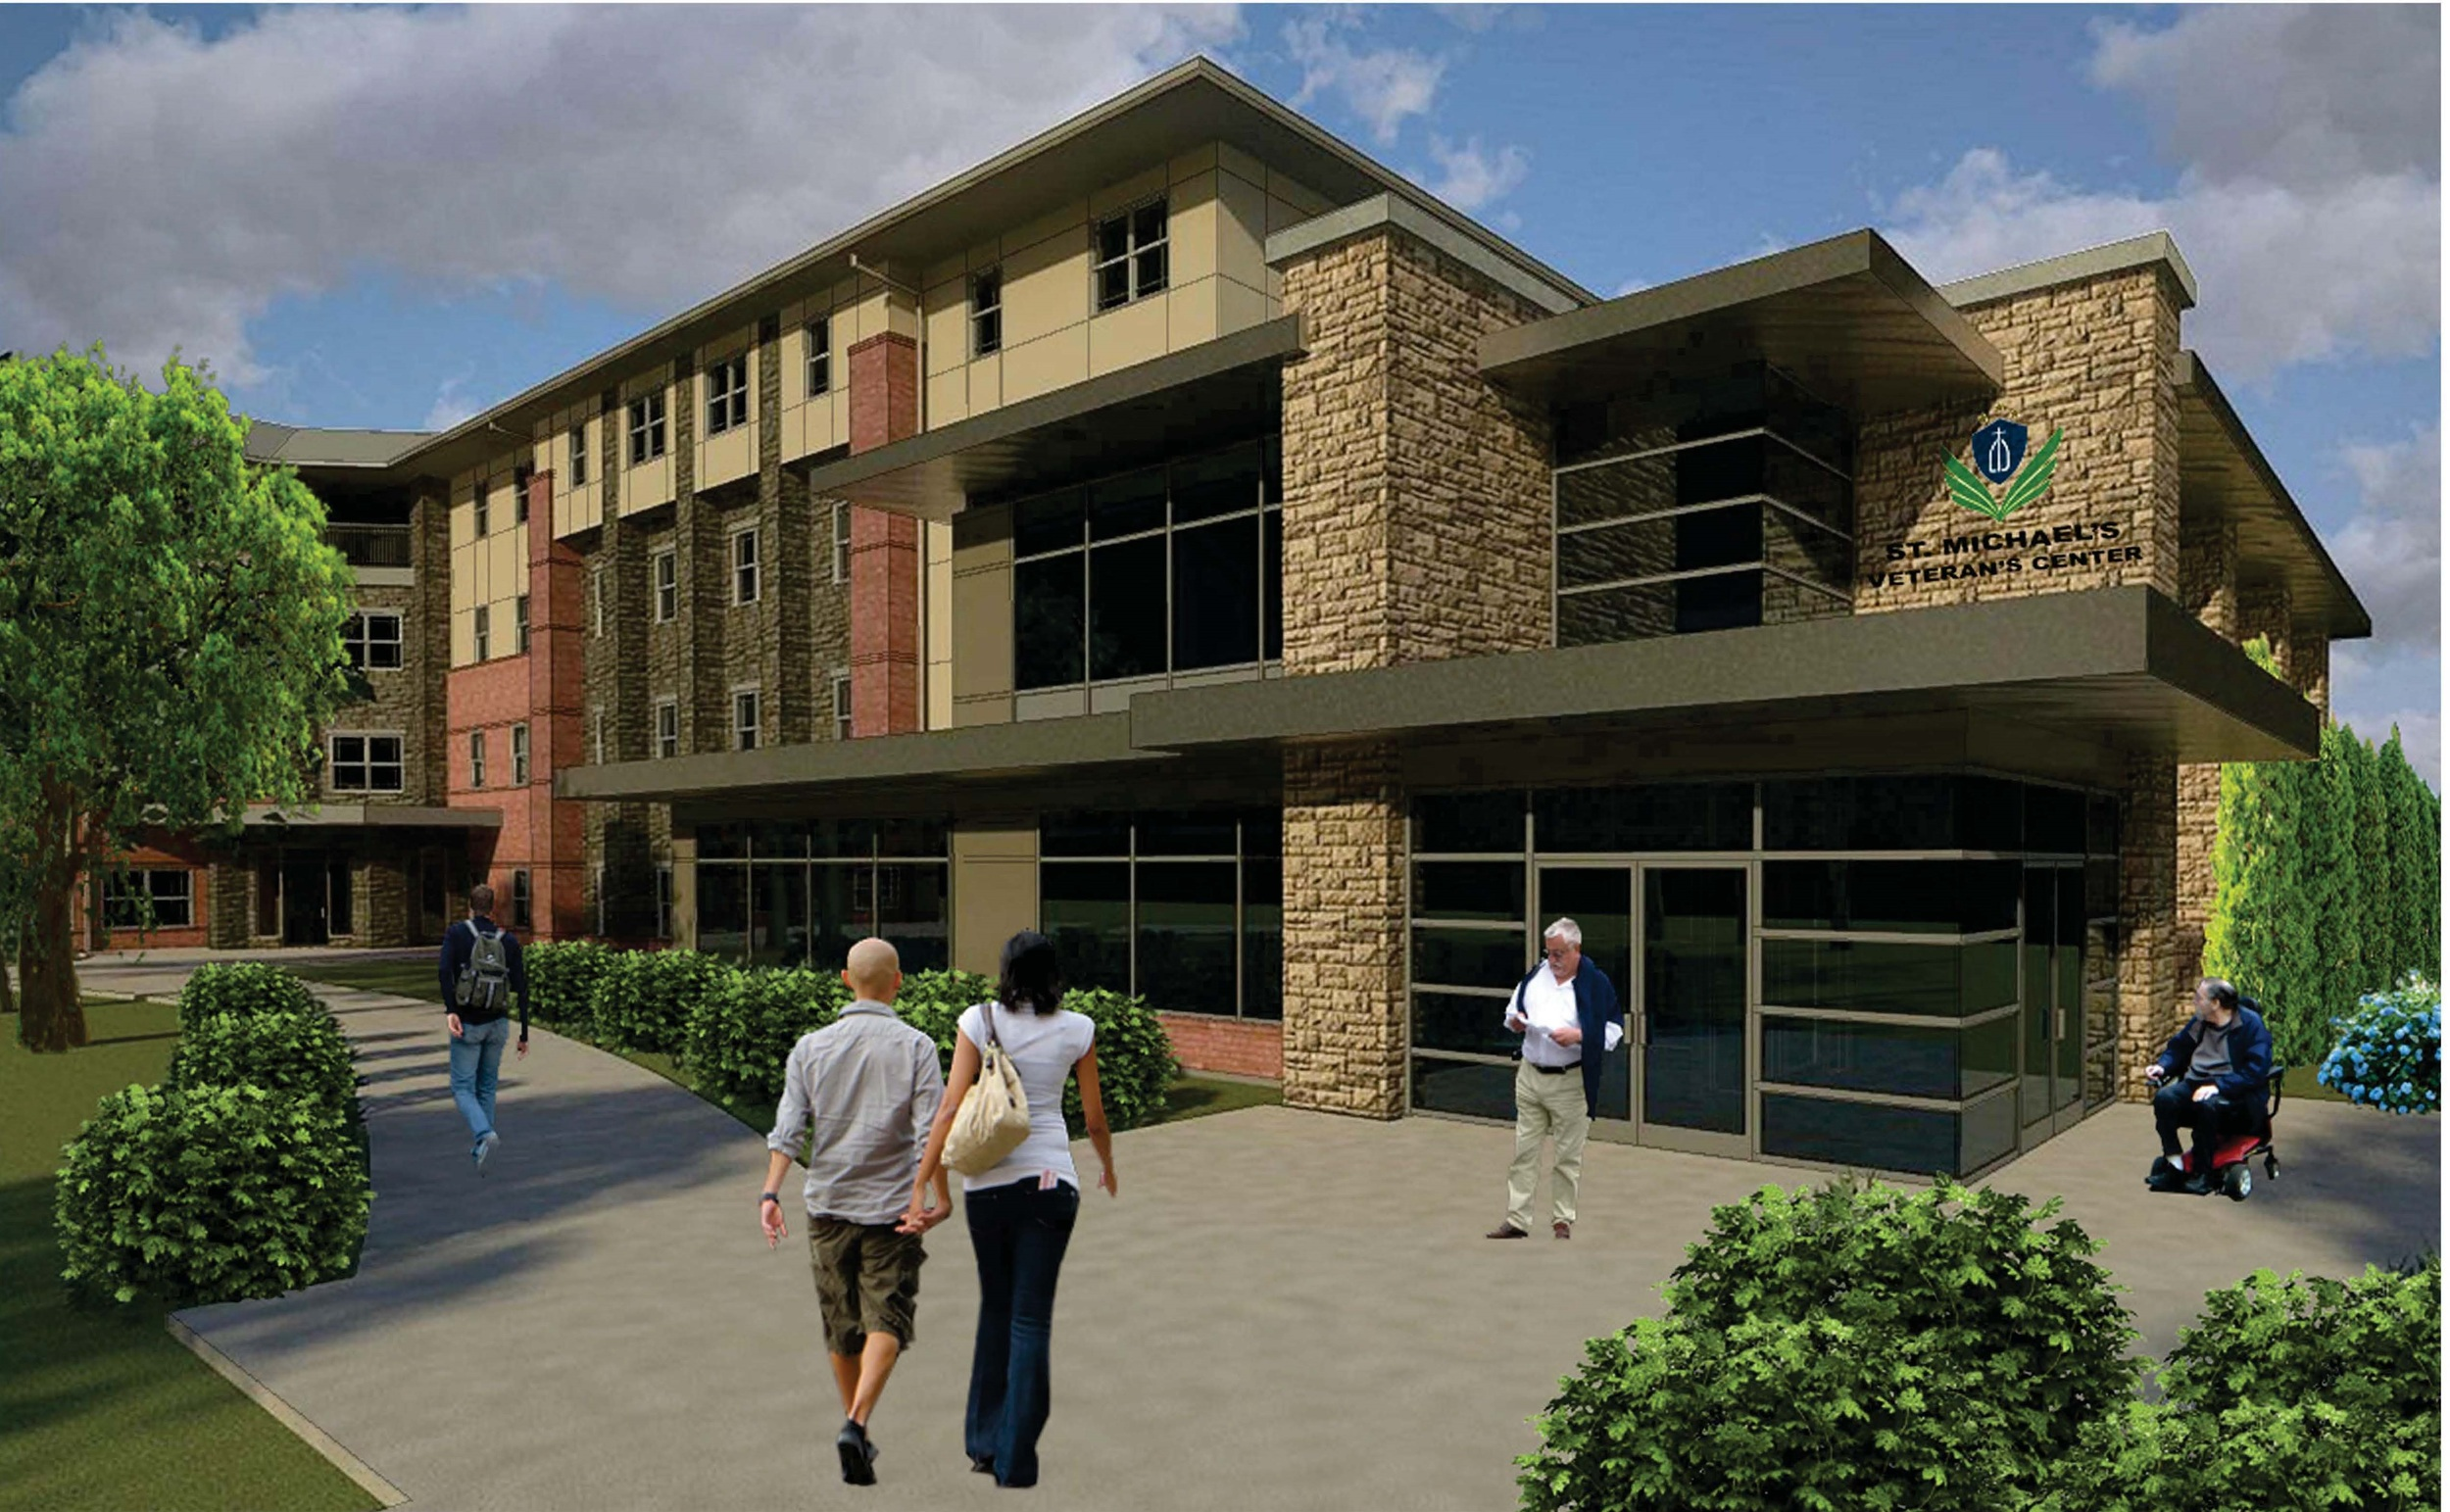 The St. Michael's Veterans Center serves homeless veterans; veterans with special needs, physical, mental and emotional impairments; or veterans facing imminent risk of being homeless. Rendering courtesy of 4Sight Construction Group.